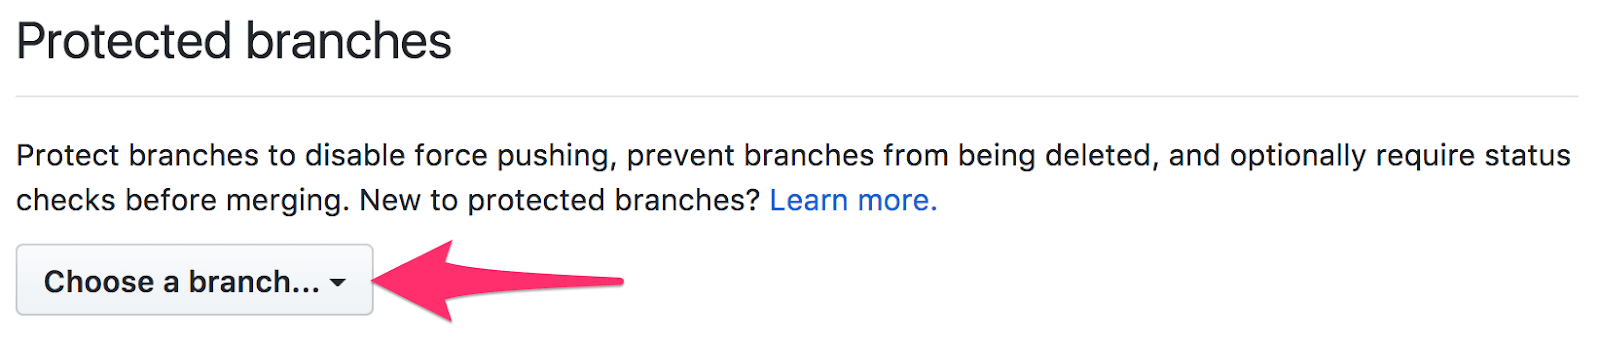 Selecting a branch in Protected Branches.